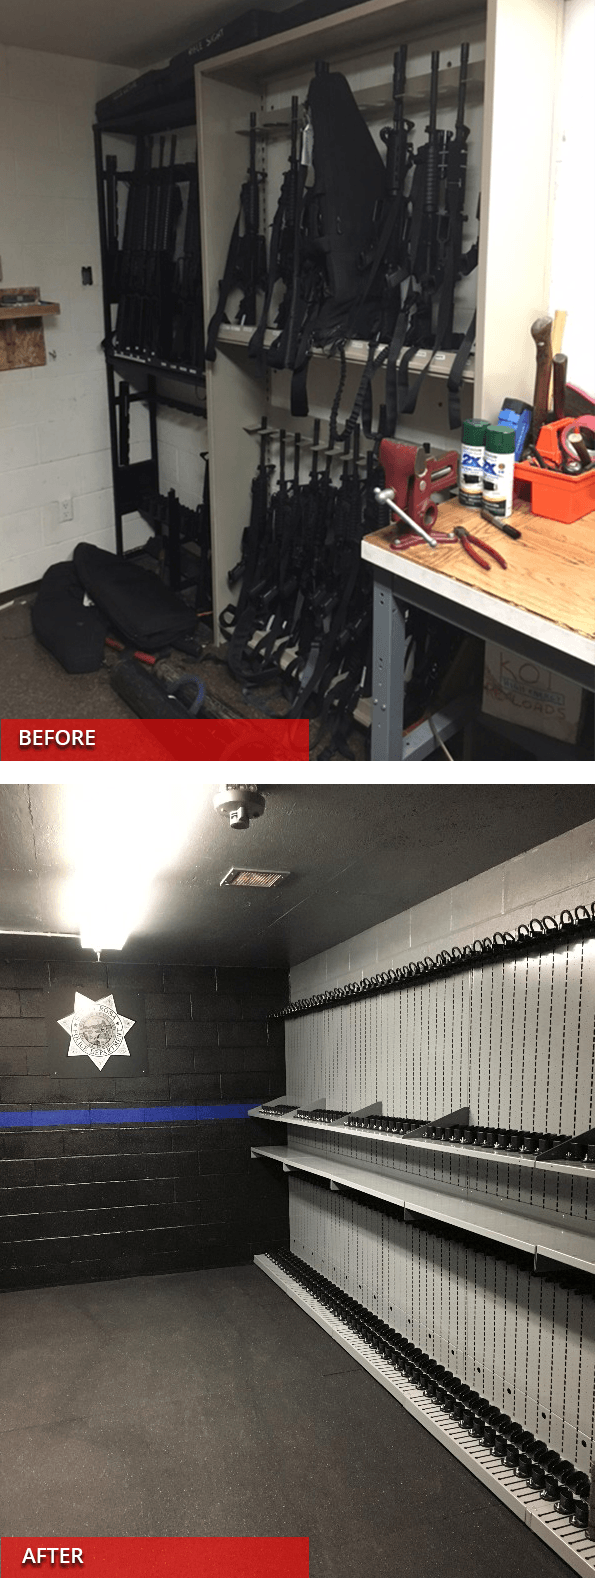 Arms Room Before & After